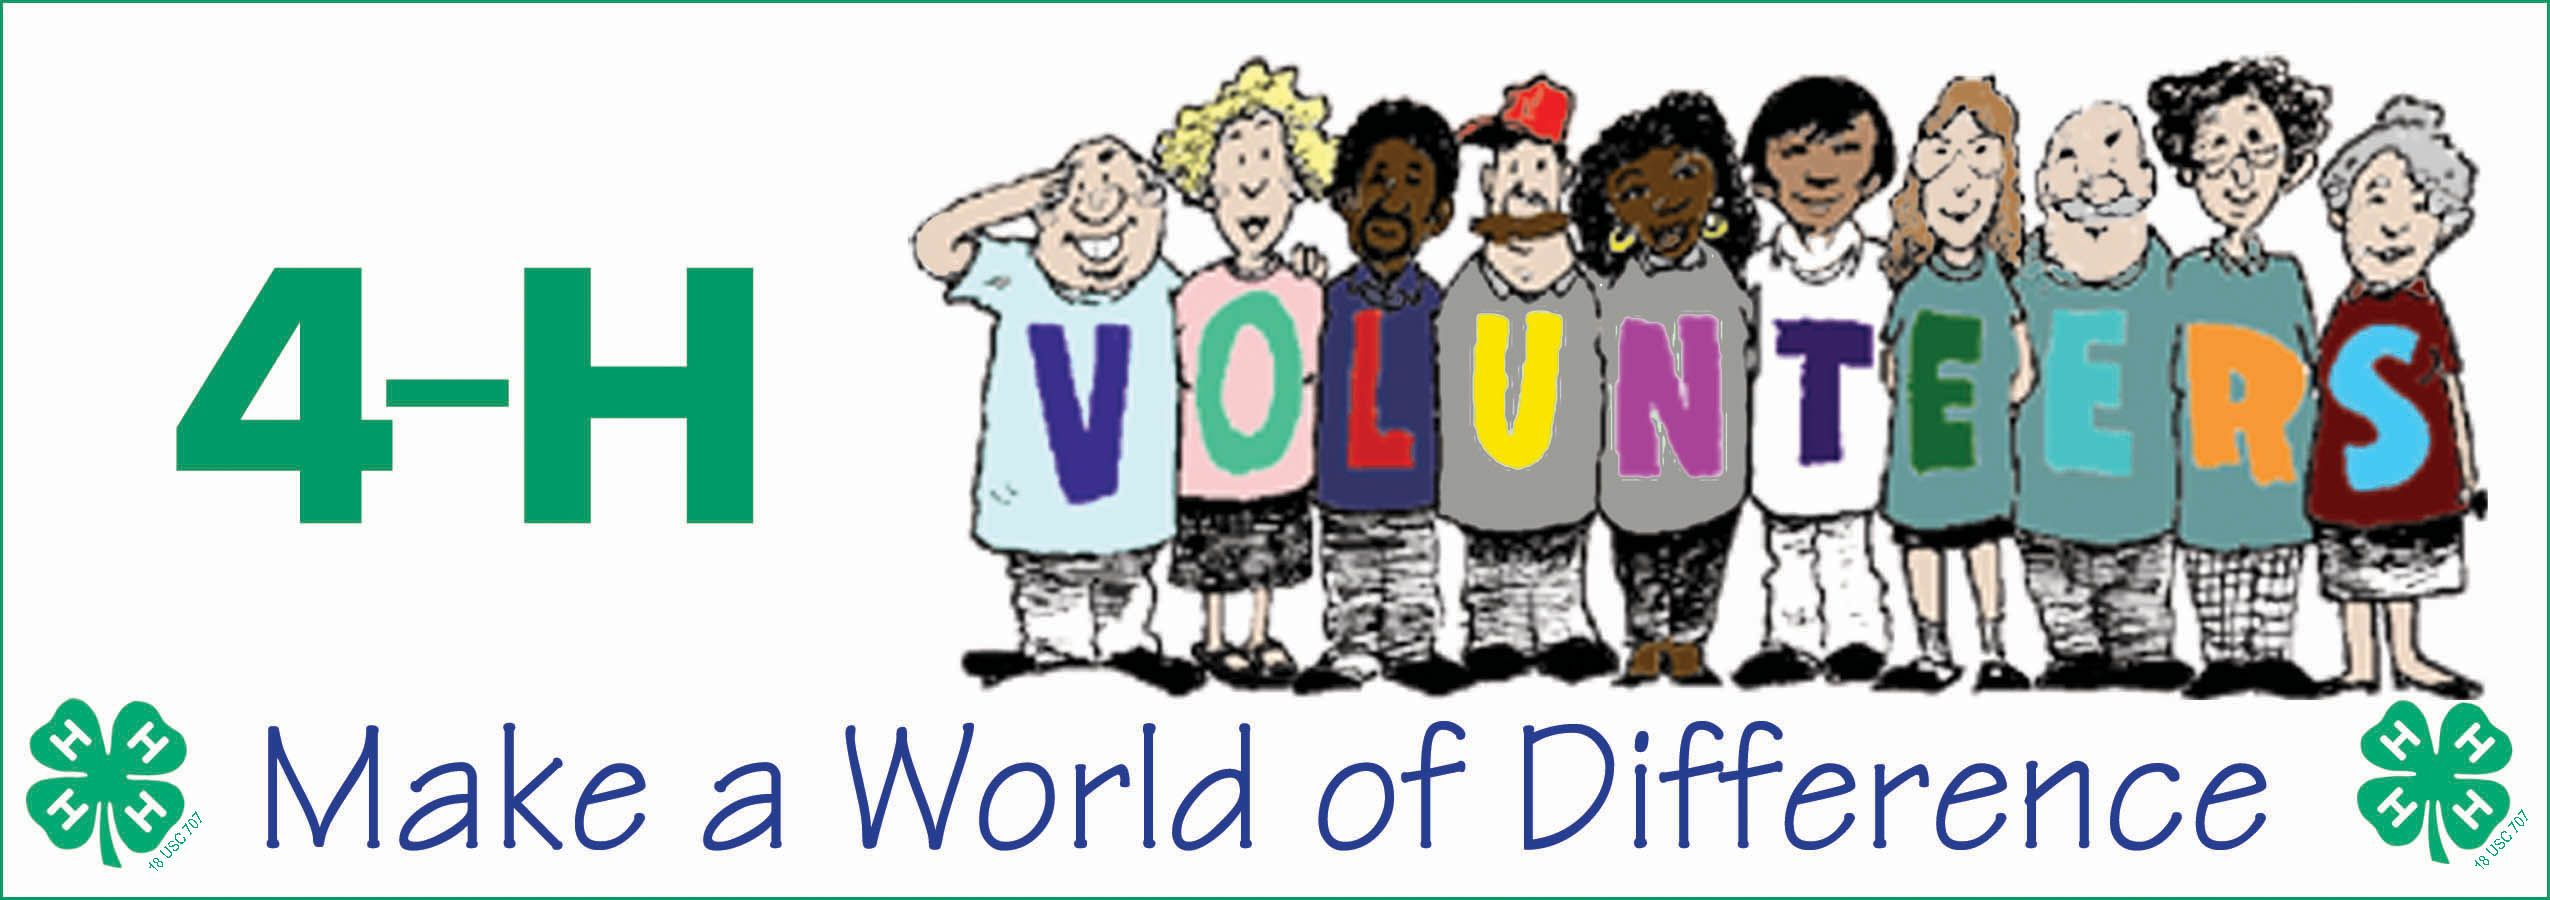 Volunteering clipart club member. Pix for classroom volunteer